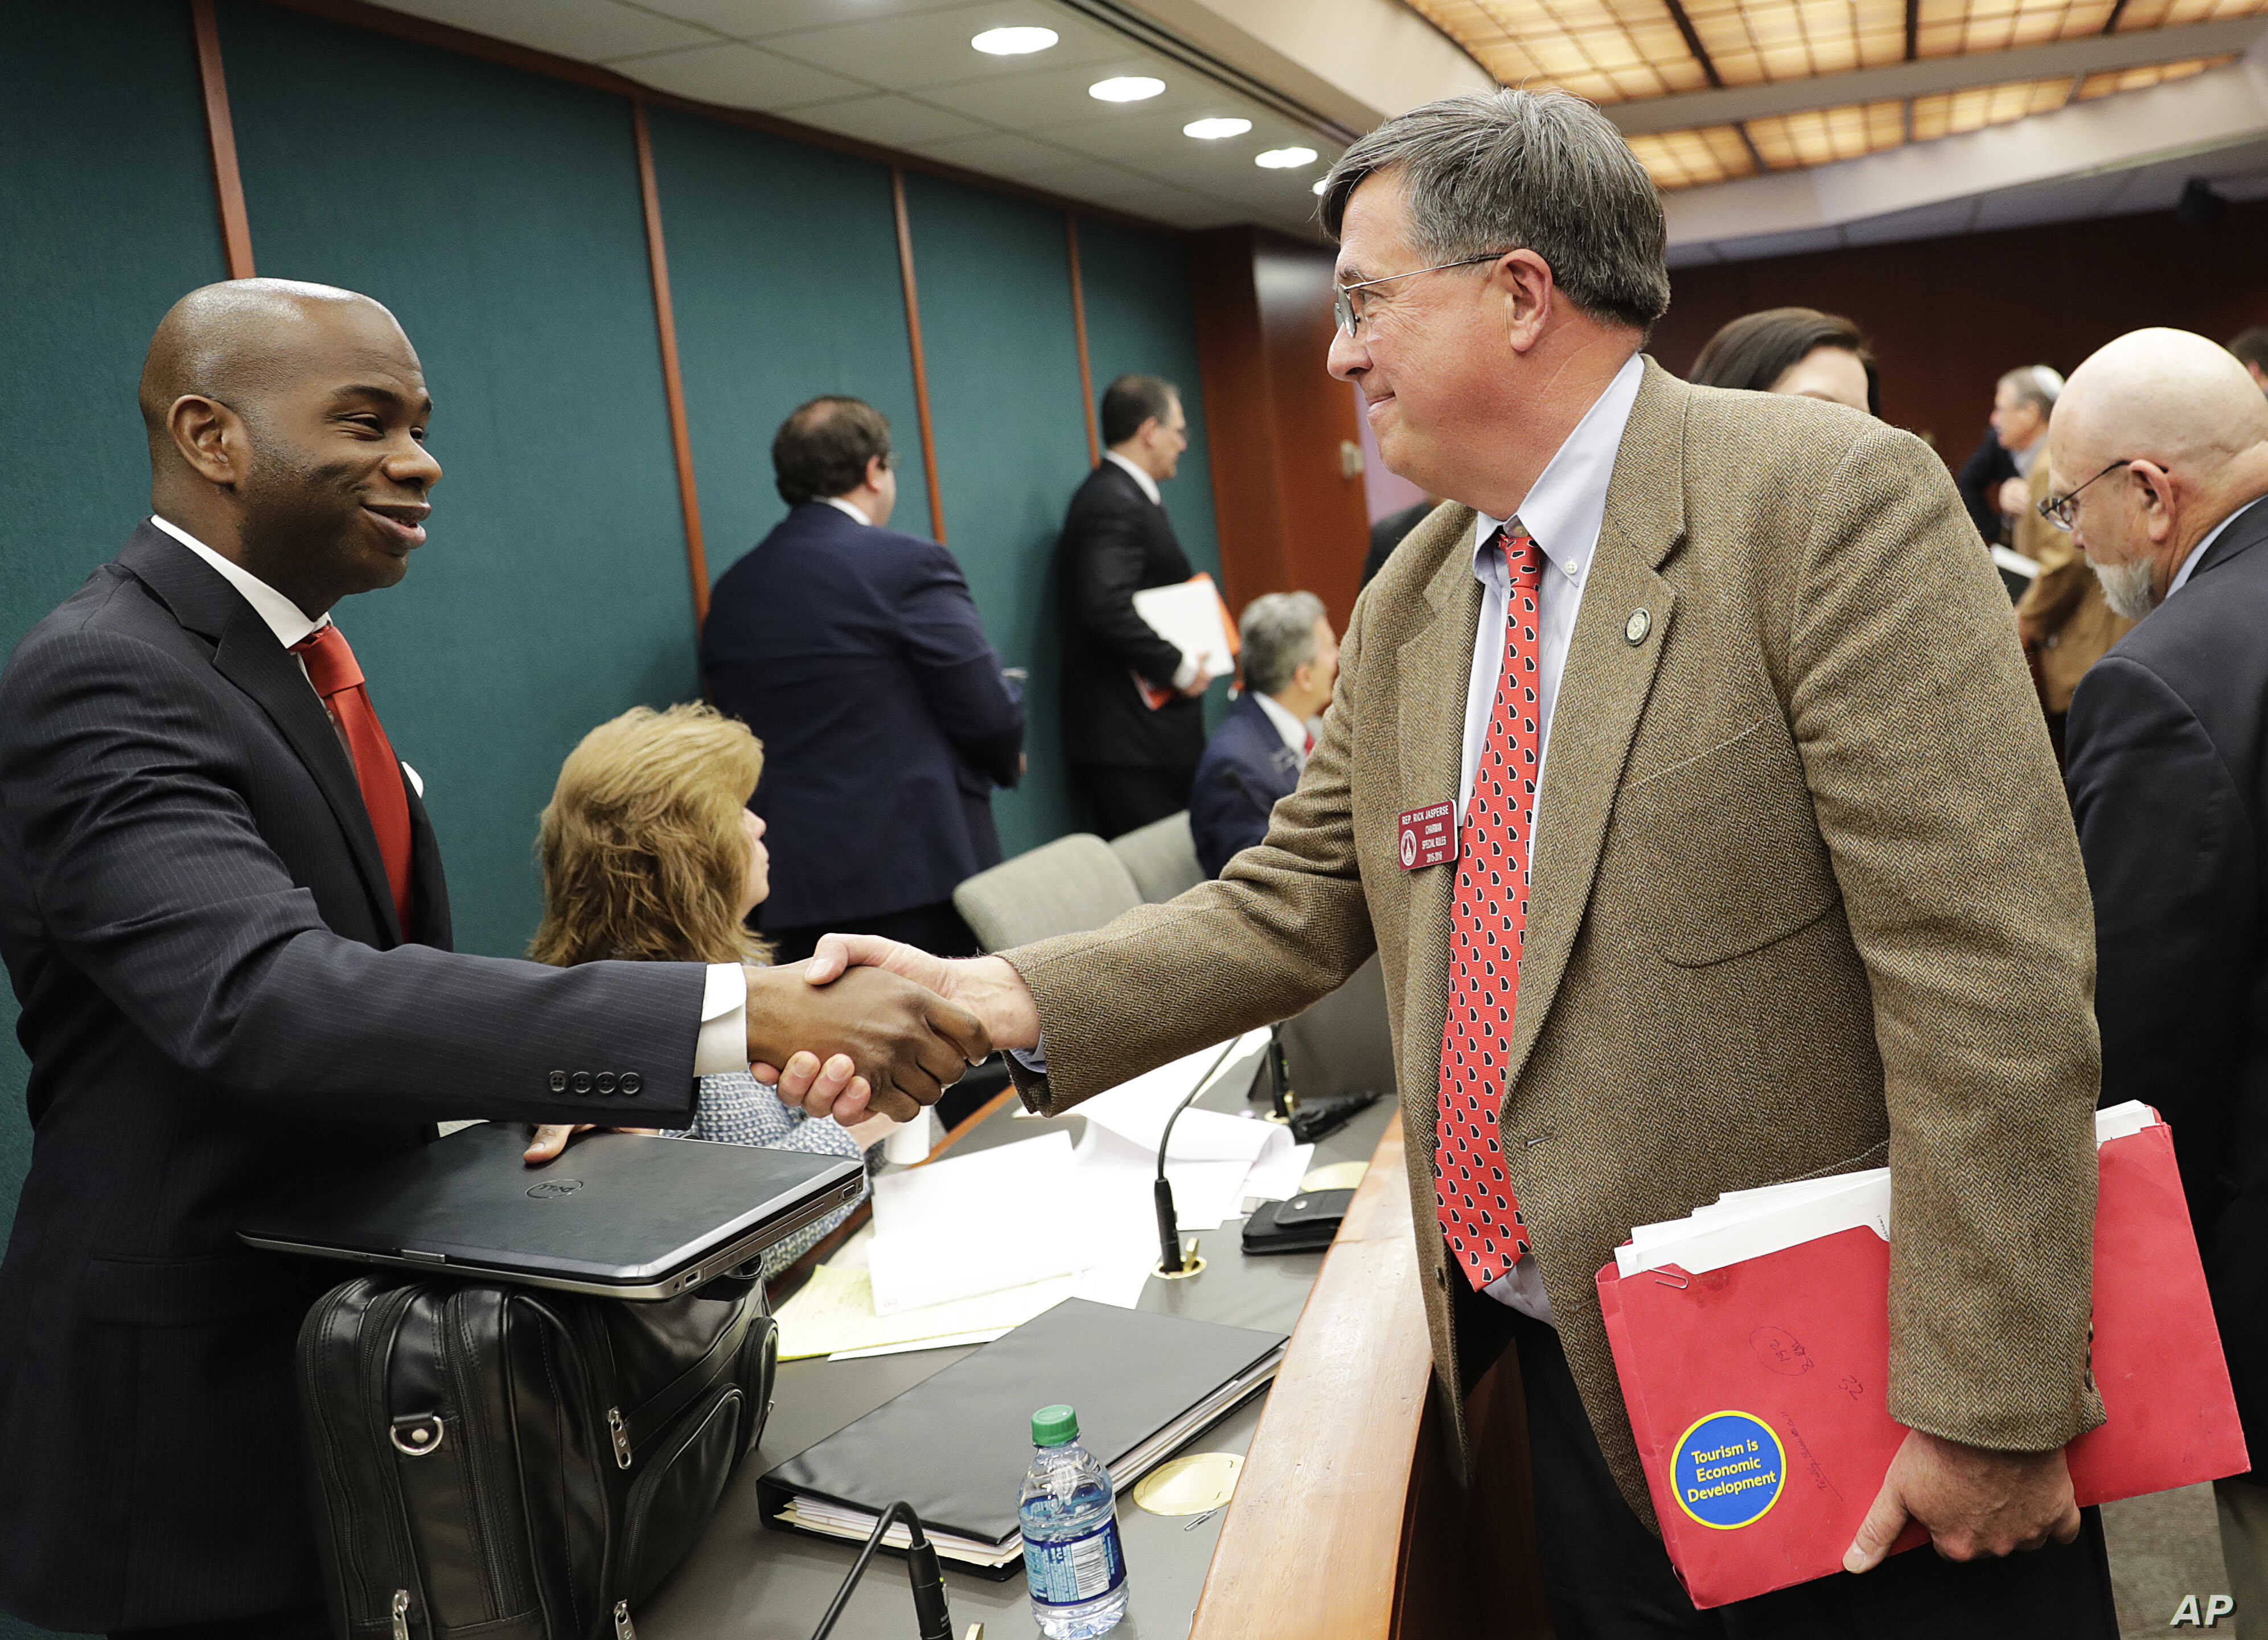 Georgia state Rep. Rick Jasperse, R-Jasper, right, shakes hands with Assistant Legislative Counsel Julius Tolbert in Atlanta after a Senate committee approved Jasperse's bill that would permit those with concealed carry weapons licenses to bring thei...